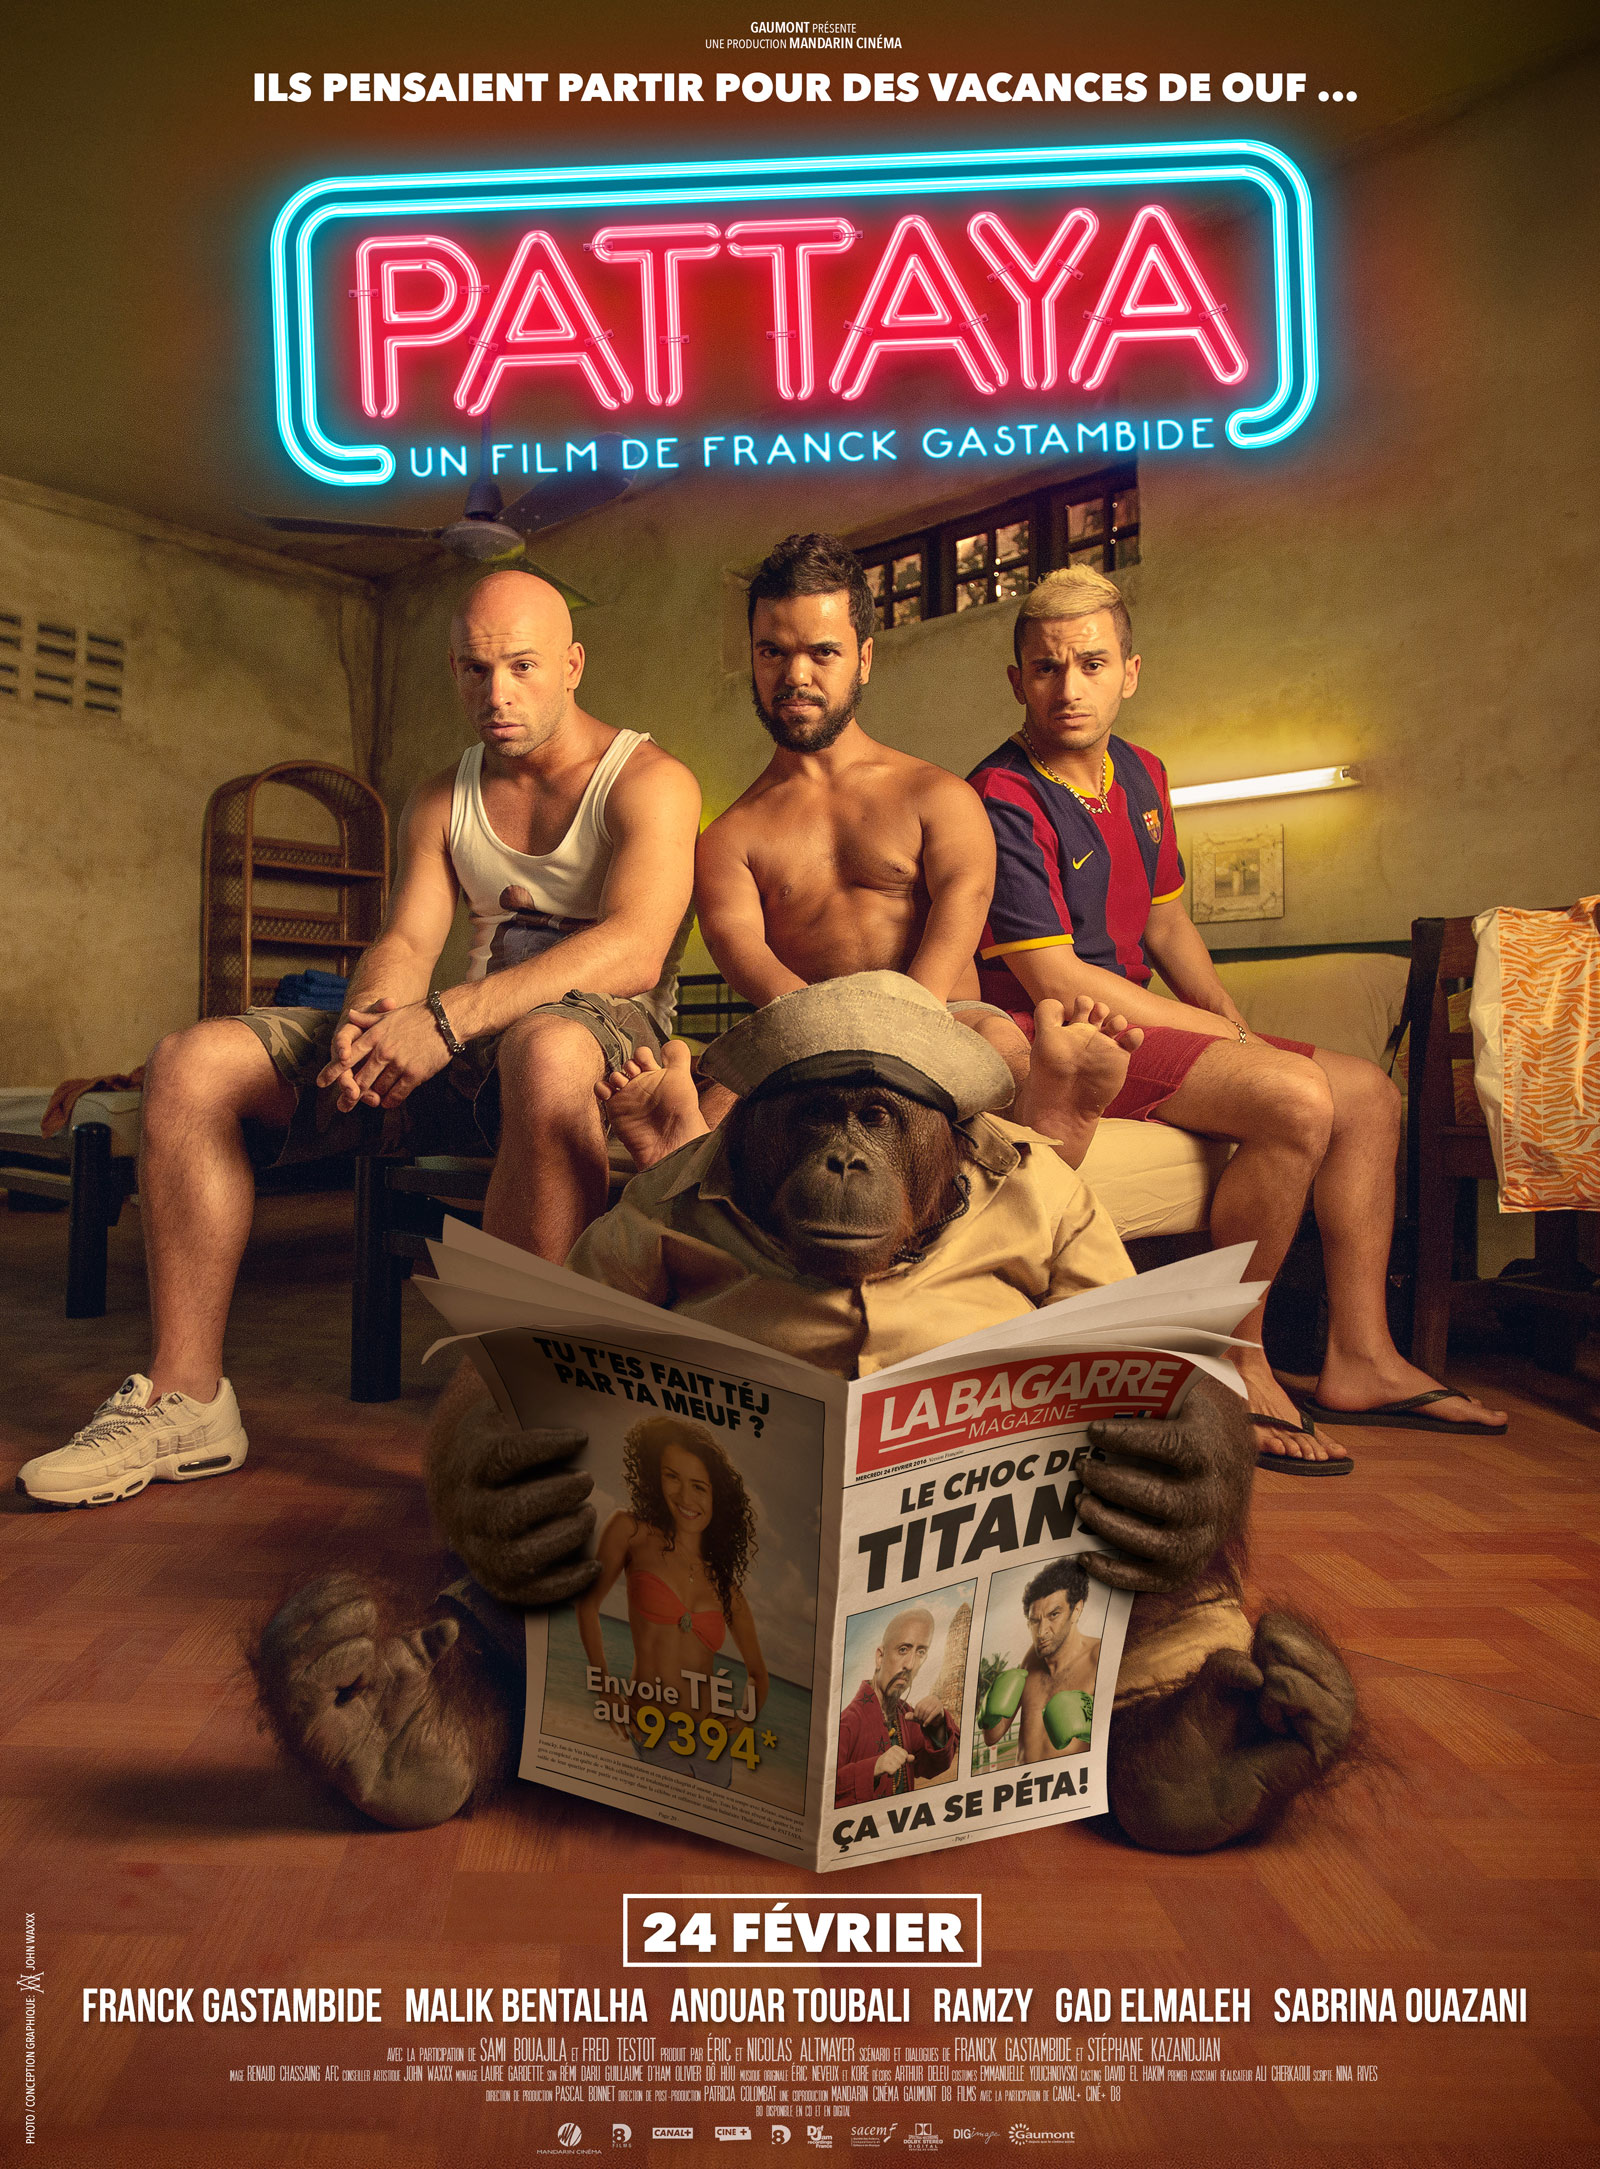 Pattaya (2016) film vf